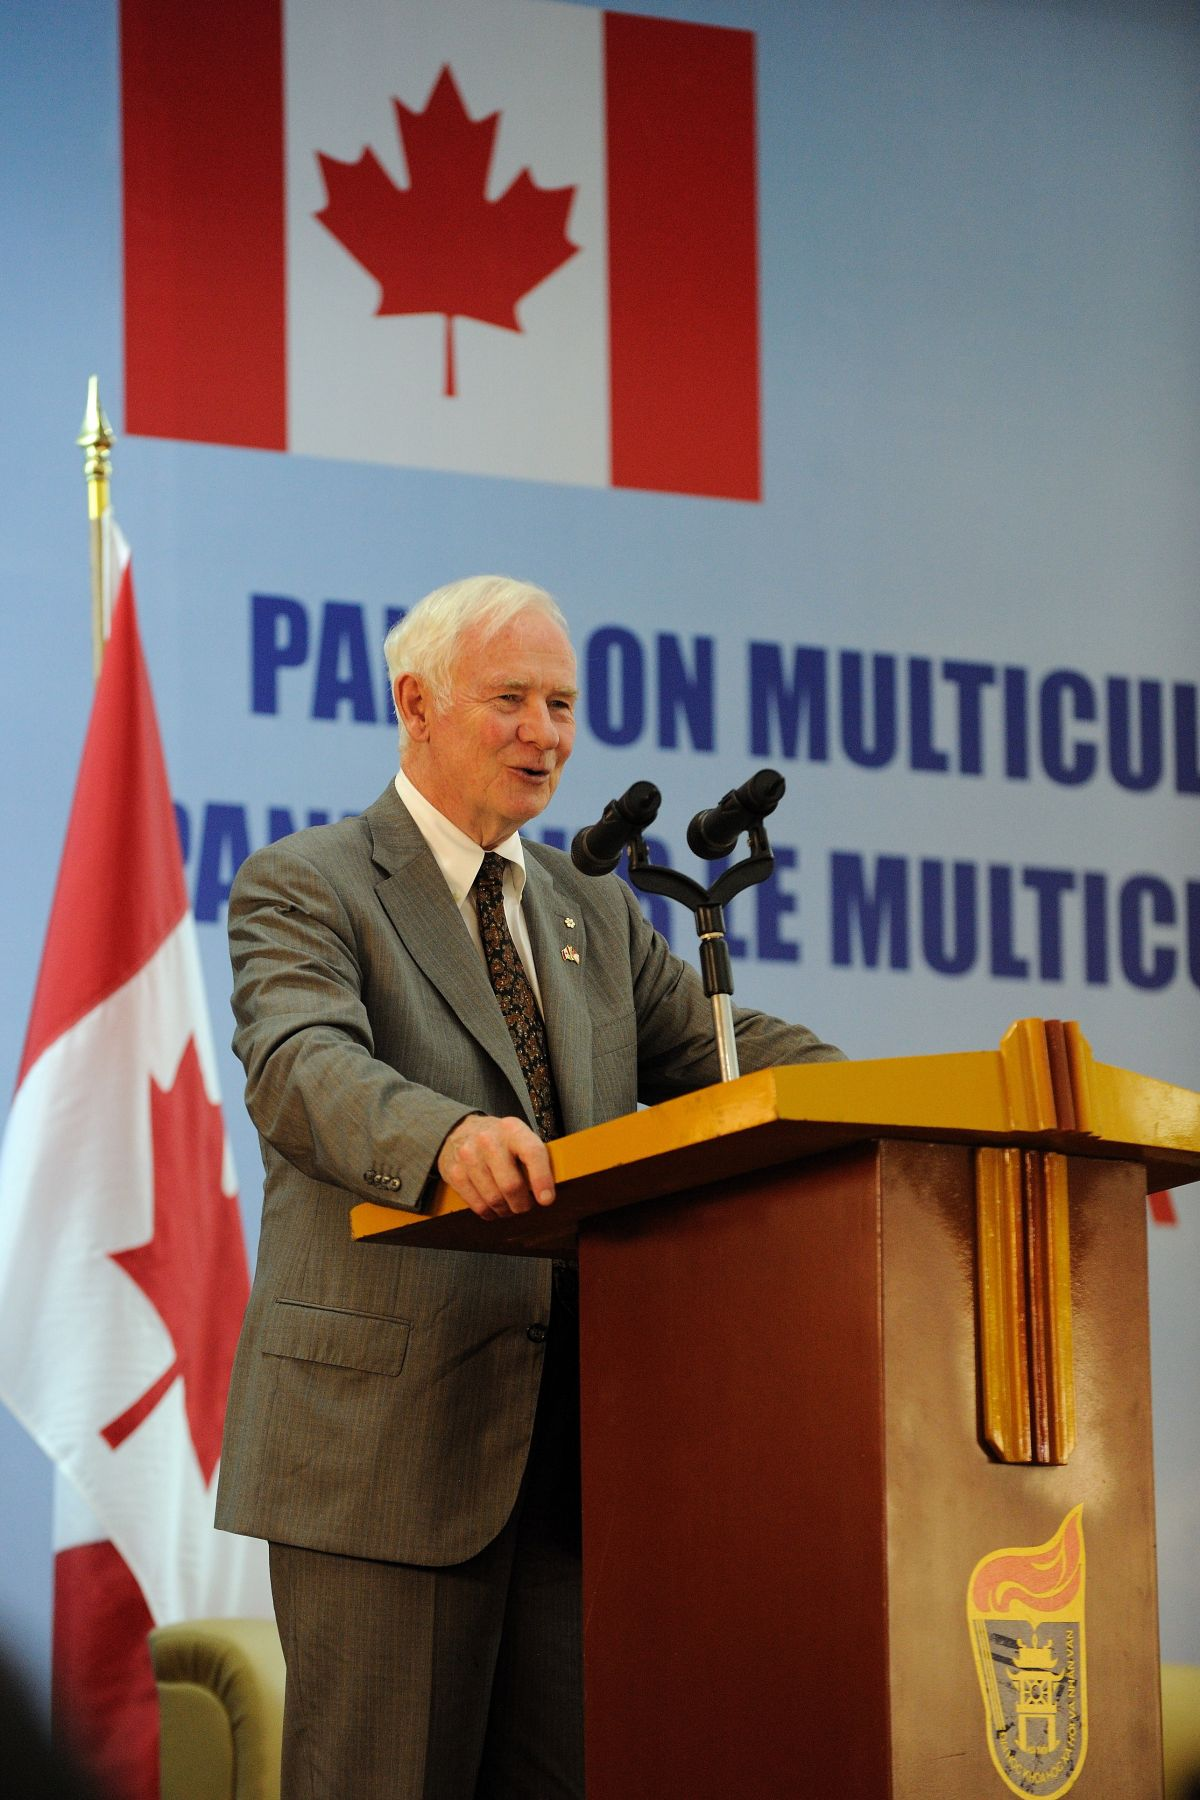 His Excellency delivered an address on multiculturalism to some 400 students, academics and Canada World Youth volunteers at the Hanoi University of Social Sciences and Humanities.